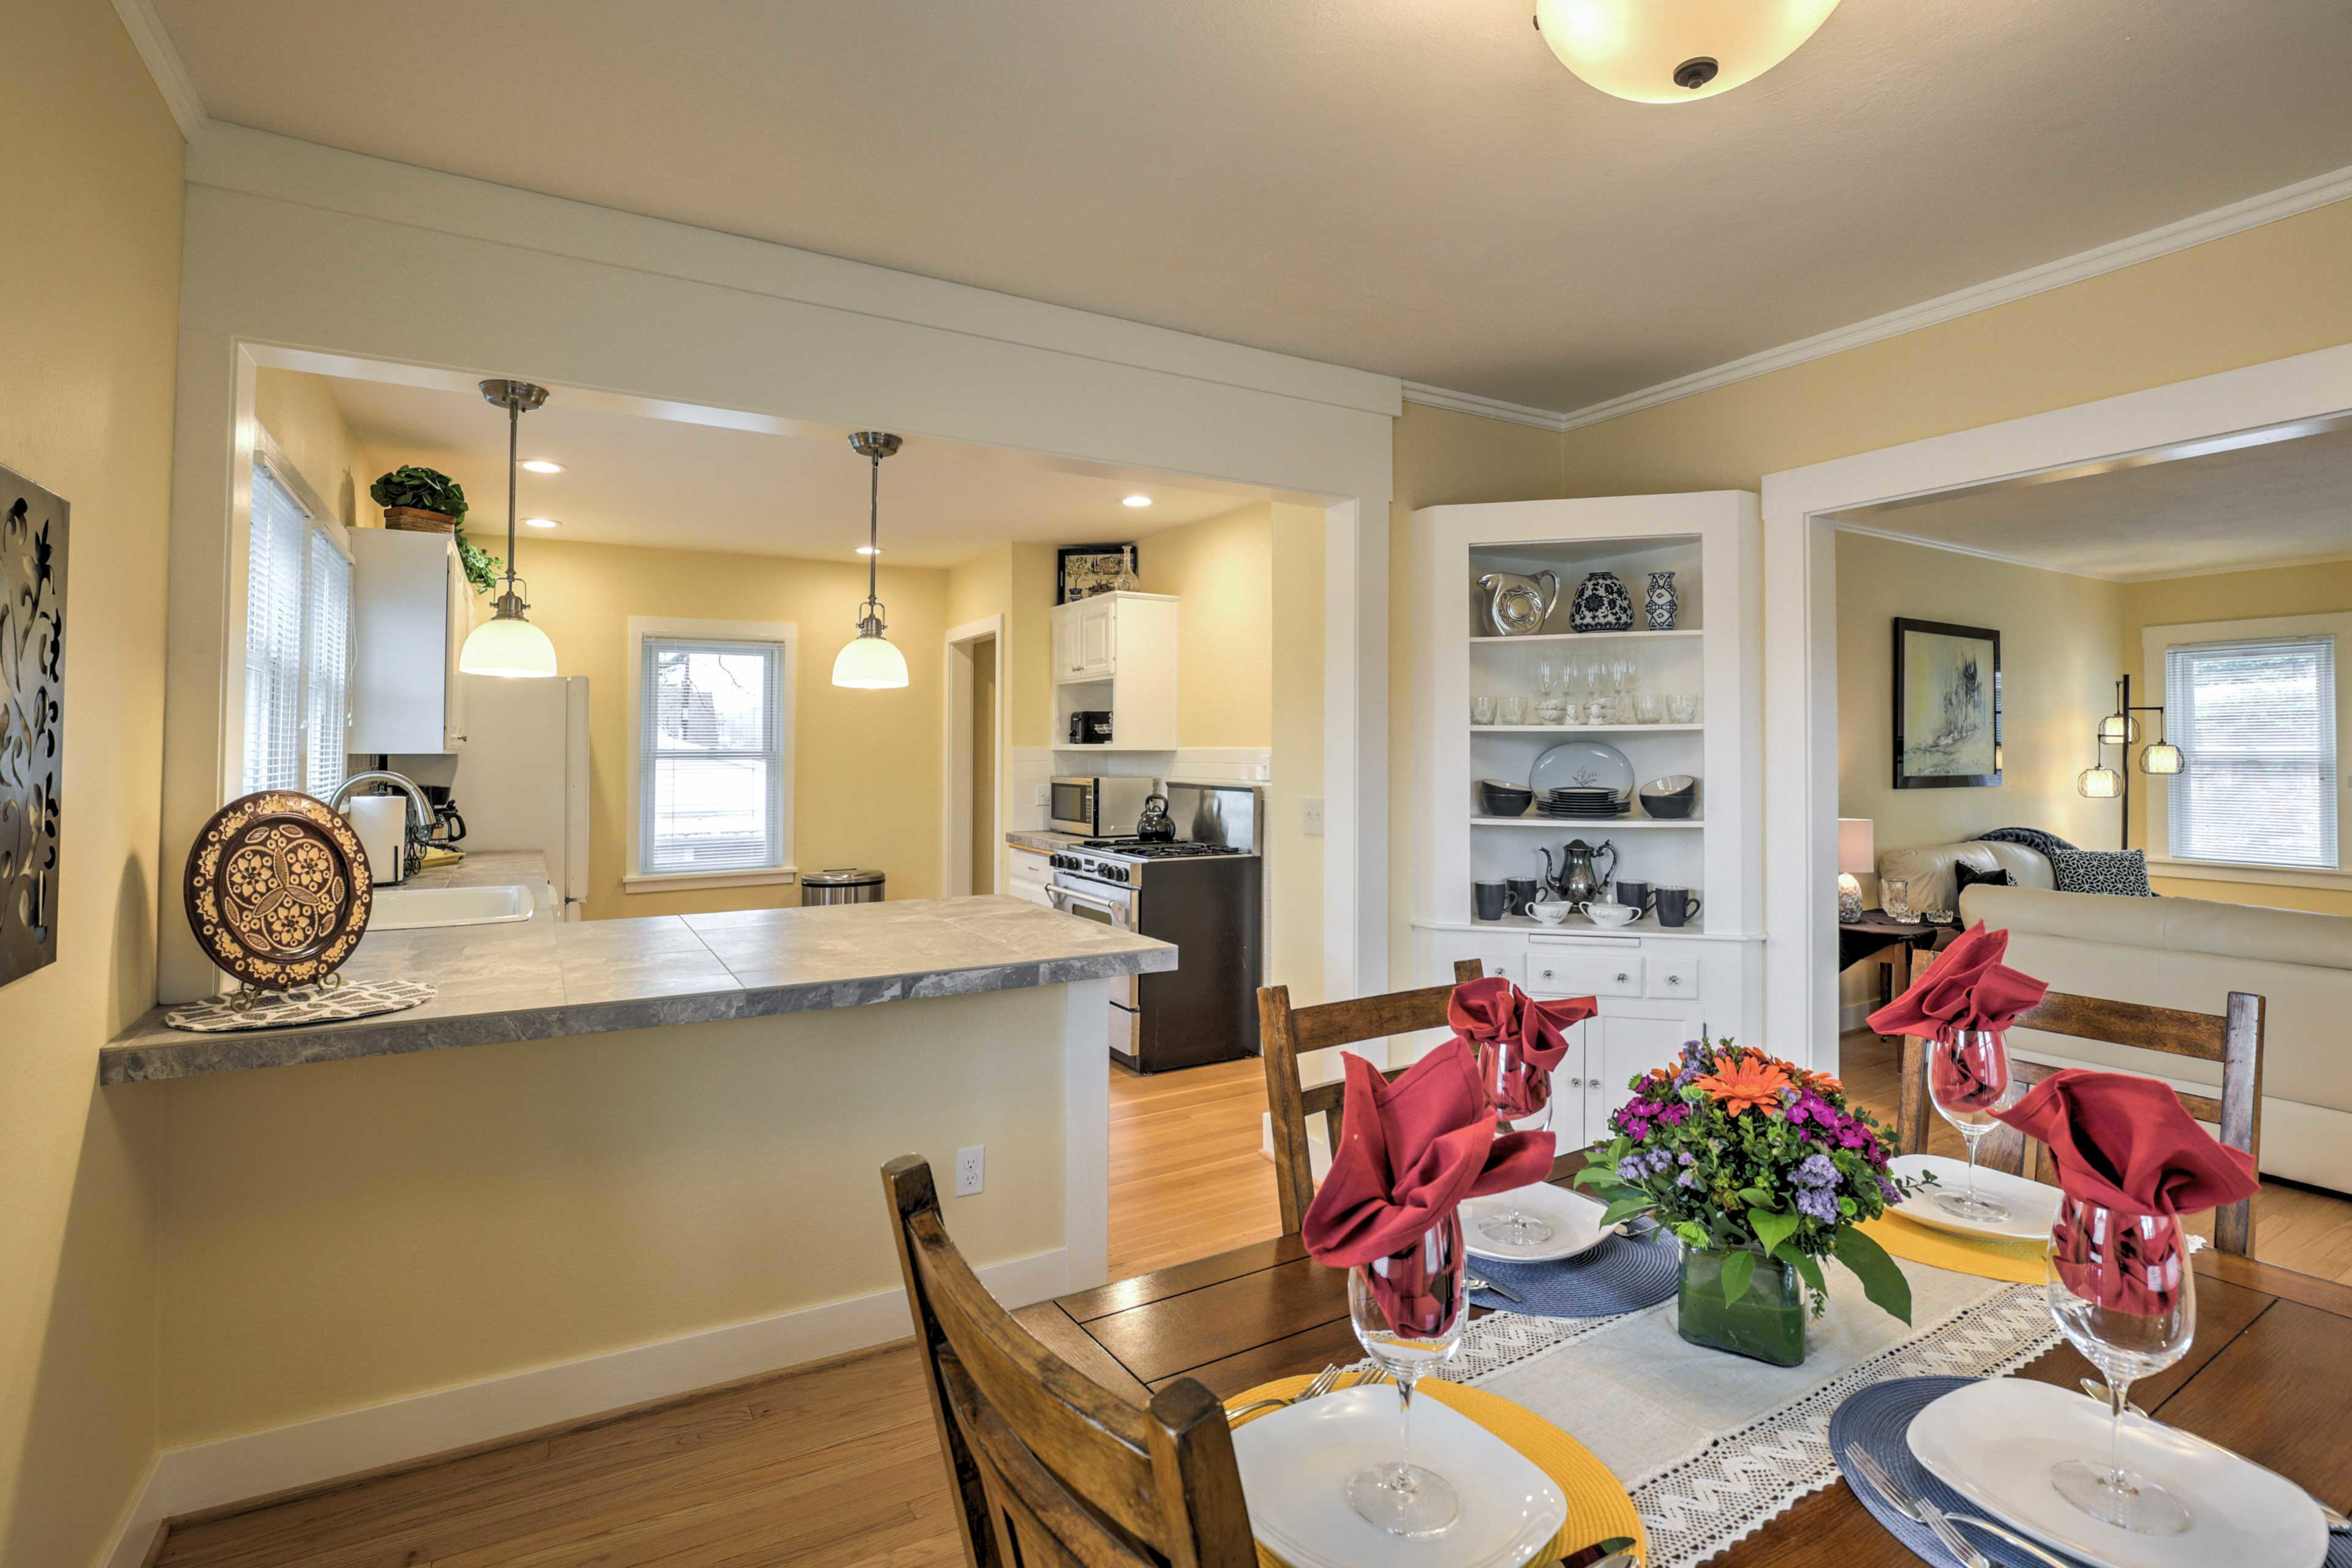 The spacious kitchen opens up to the dining area.